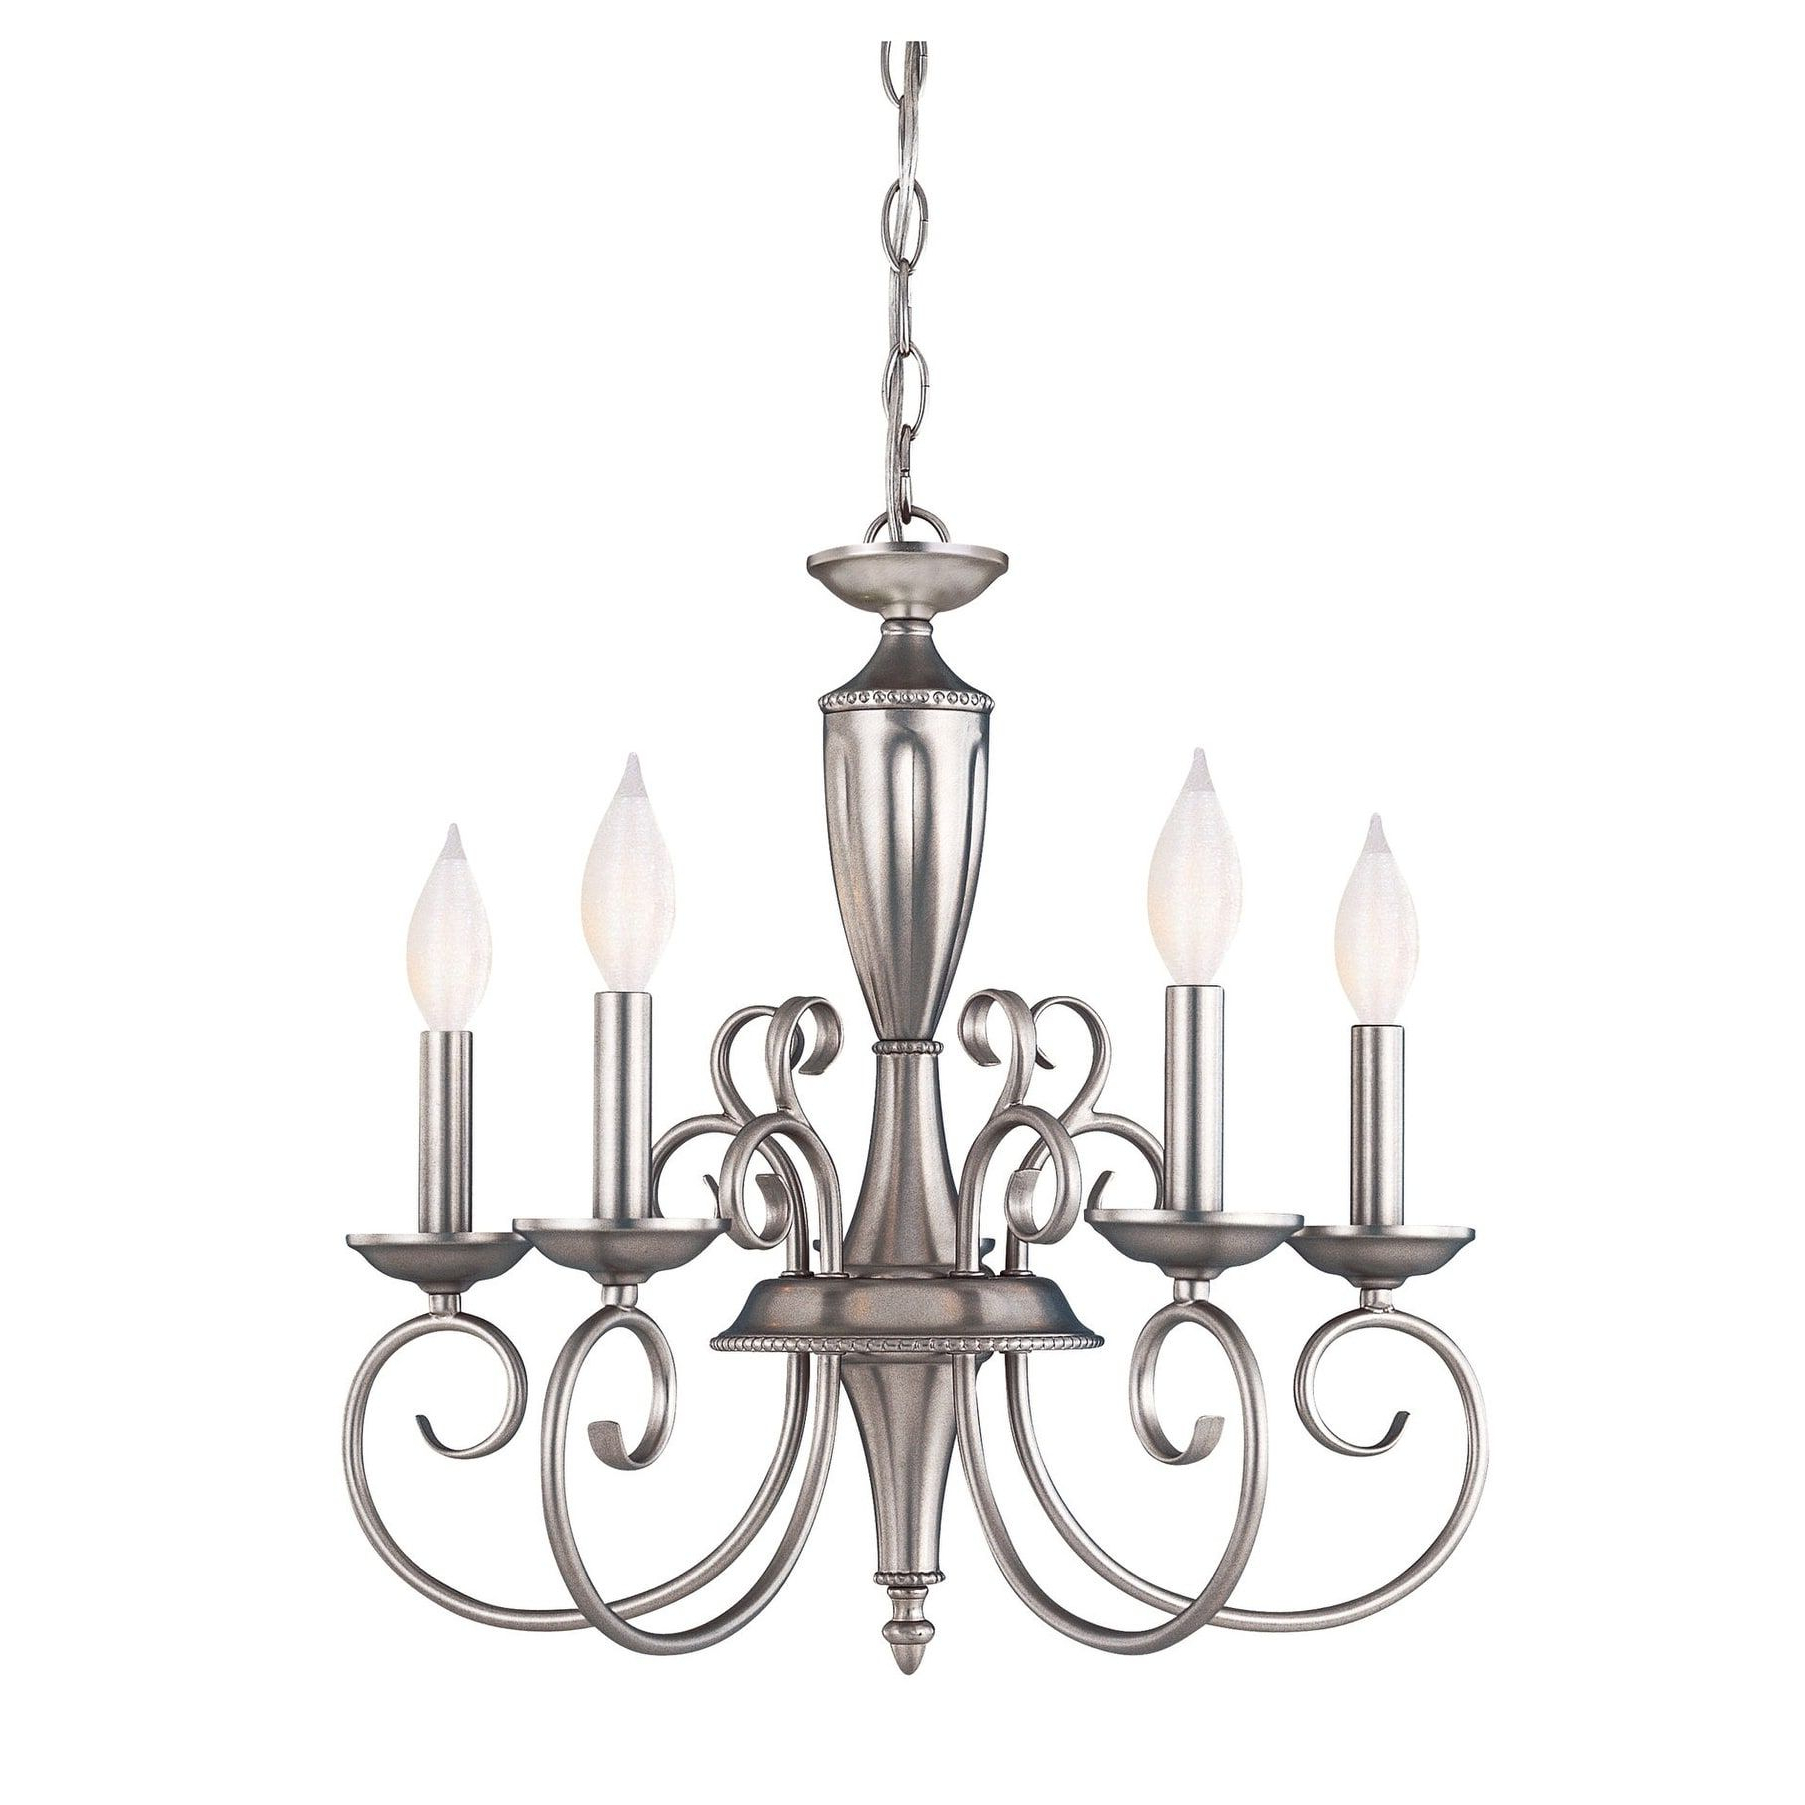 Berger 5 Light Candle Style Chandeliers Pertaining To Fashionable Spirit 5 Light Chandelier Pewter In  (View 5 of 20)